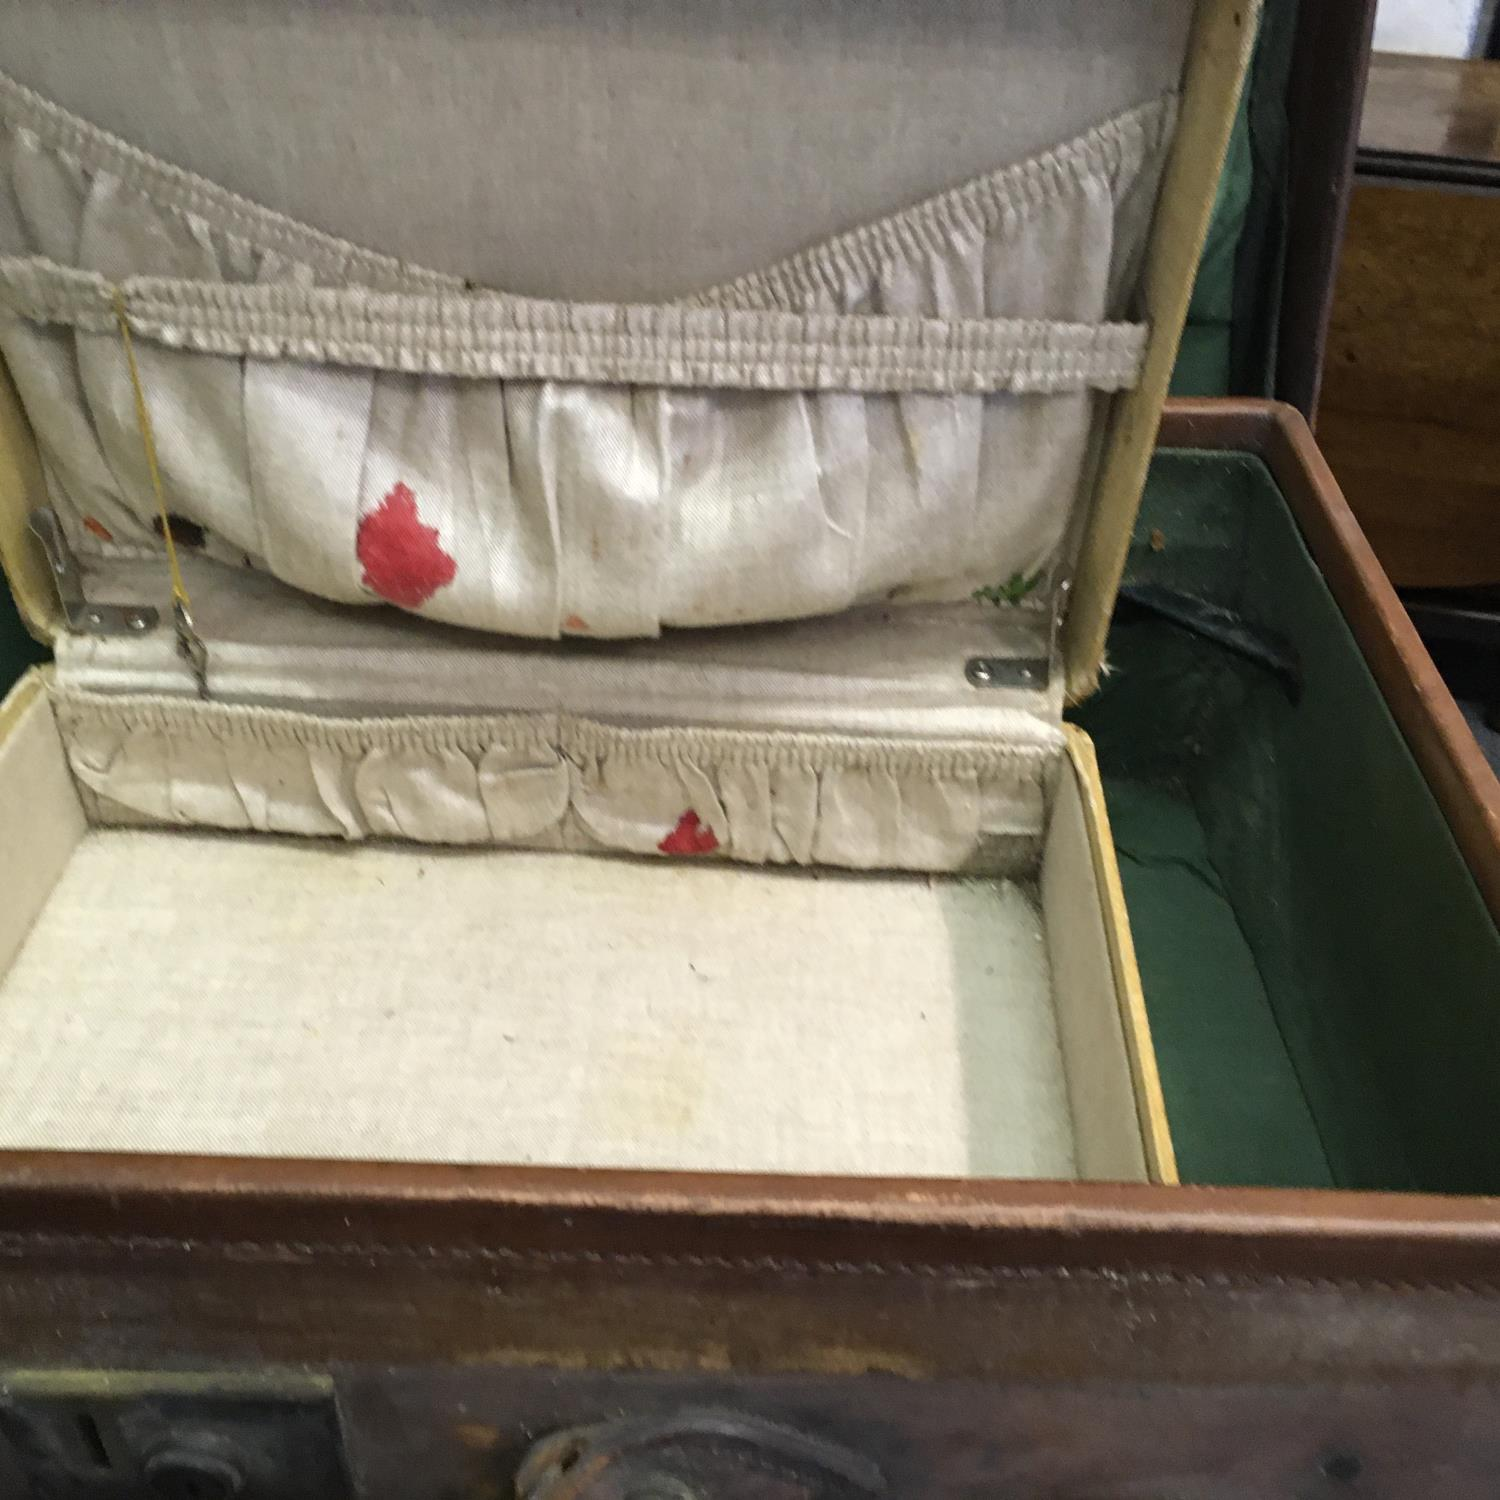 4 x matching antique leather suitcases of graduating size in what appears to be a set of 4, and 1 - Image 5 of 9